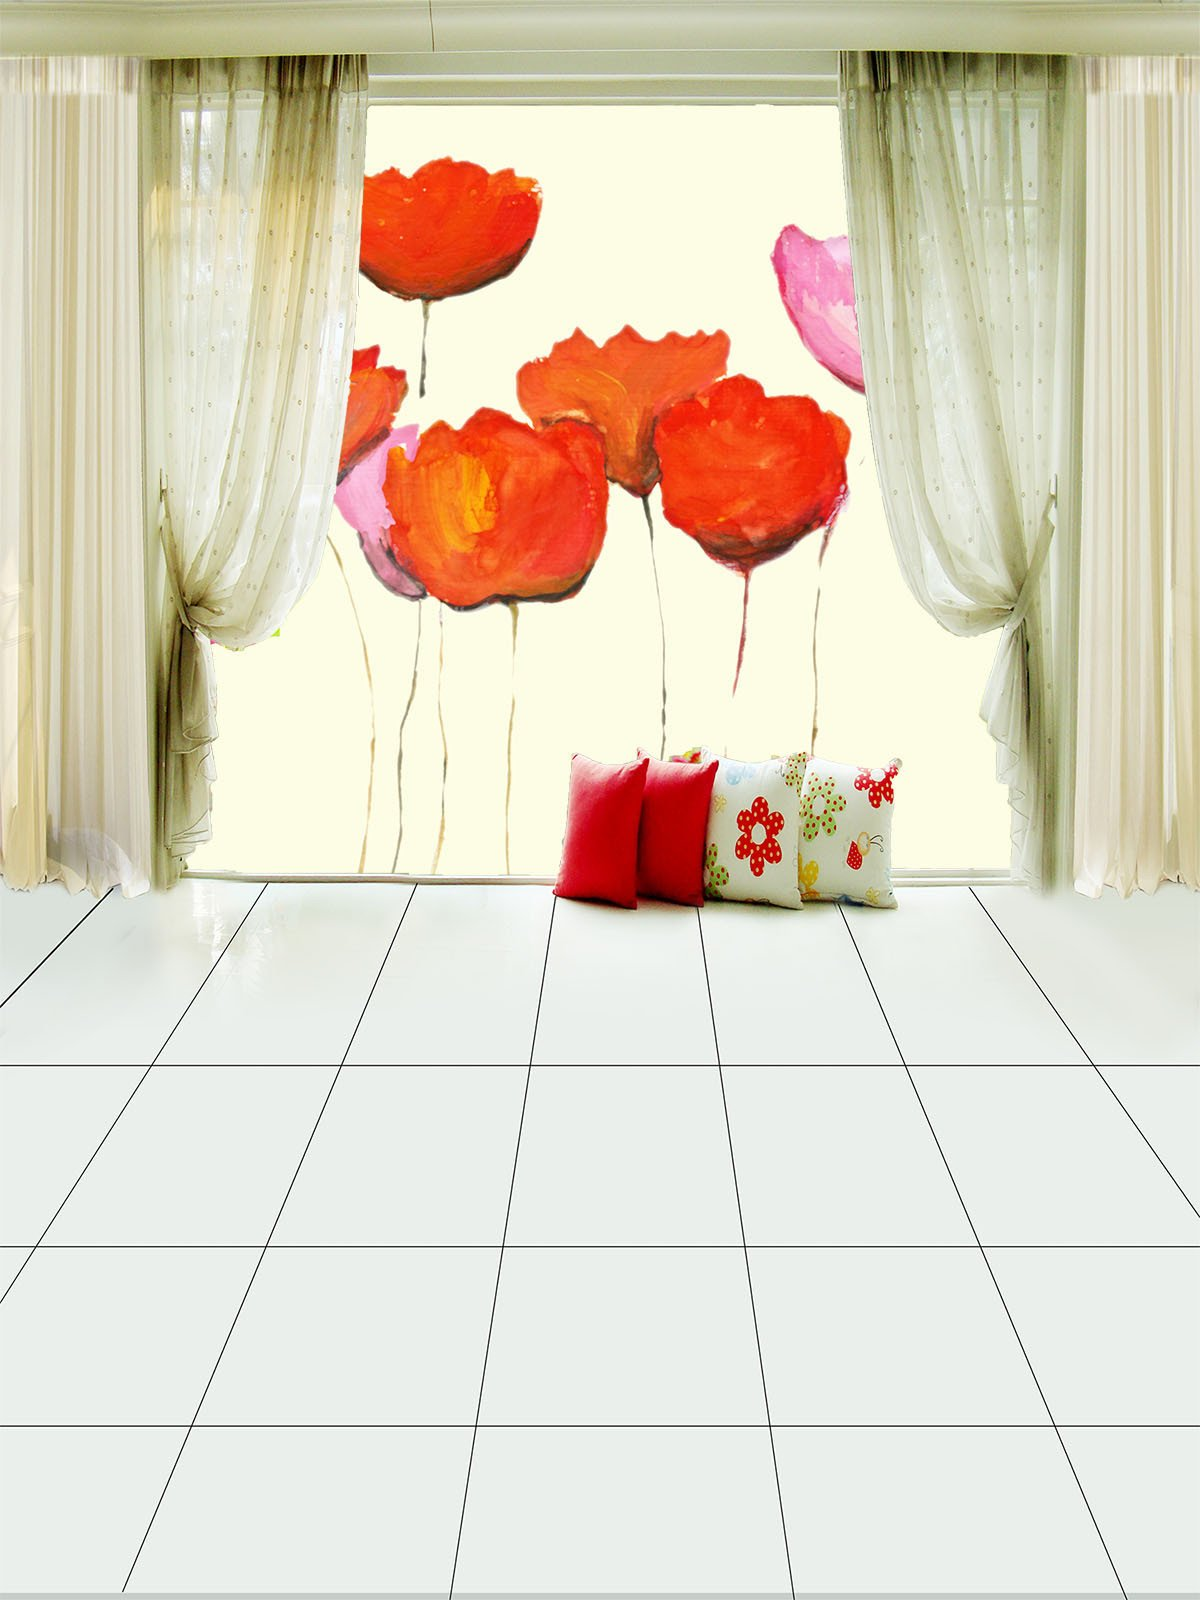 Flowers Painting 1 Wallpaper AJ Wallpaper